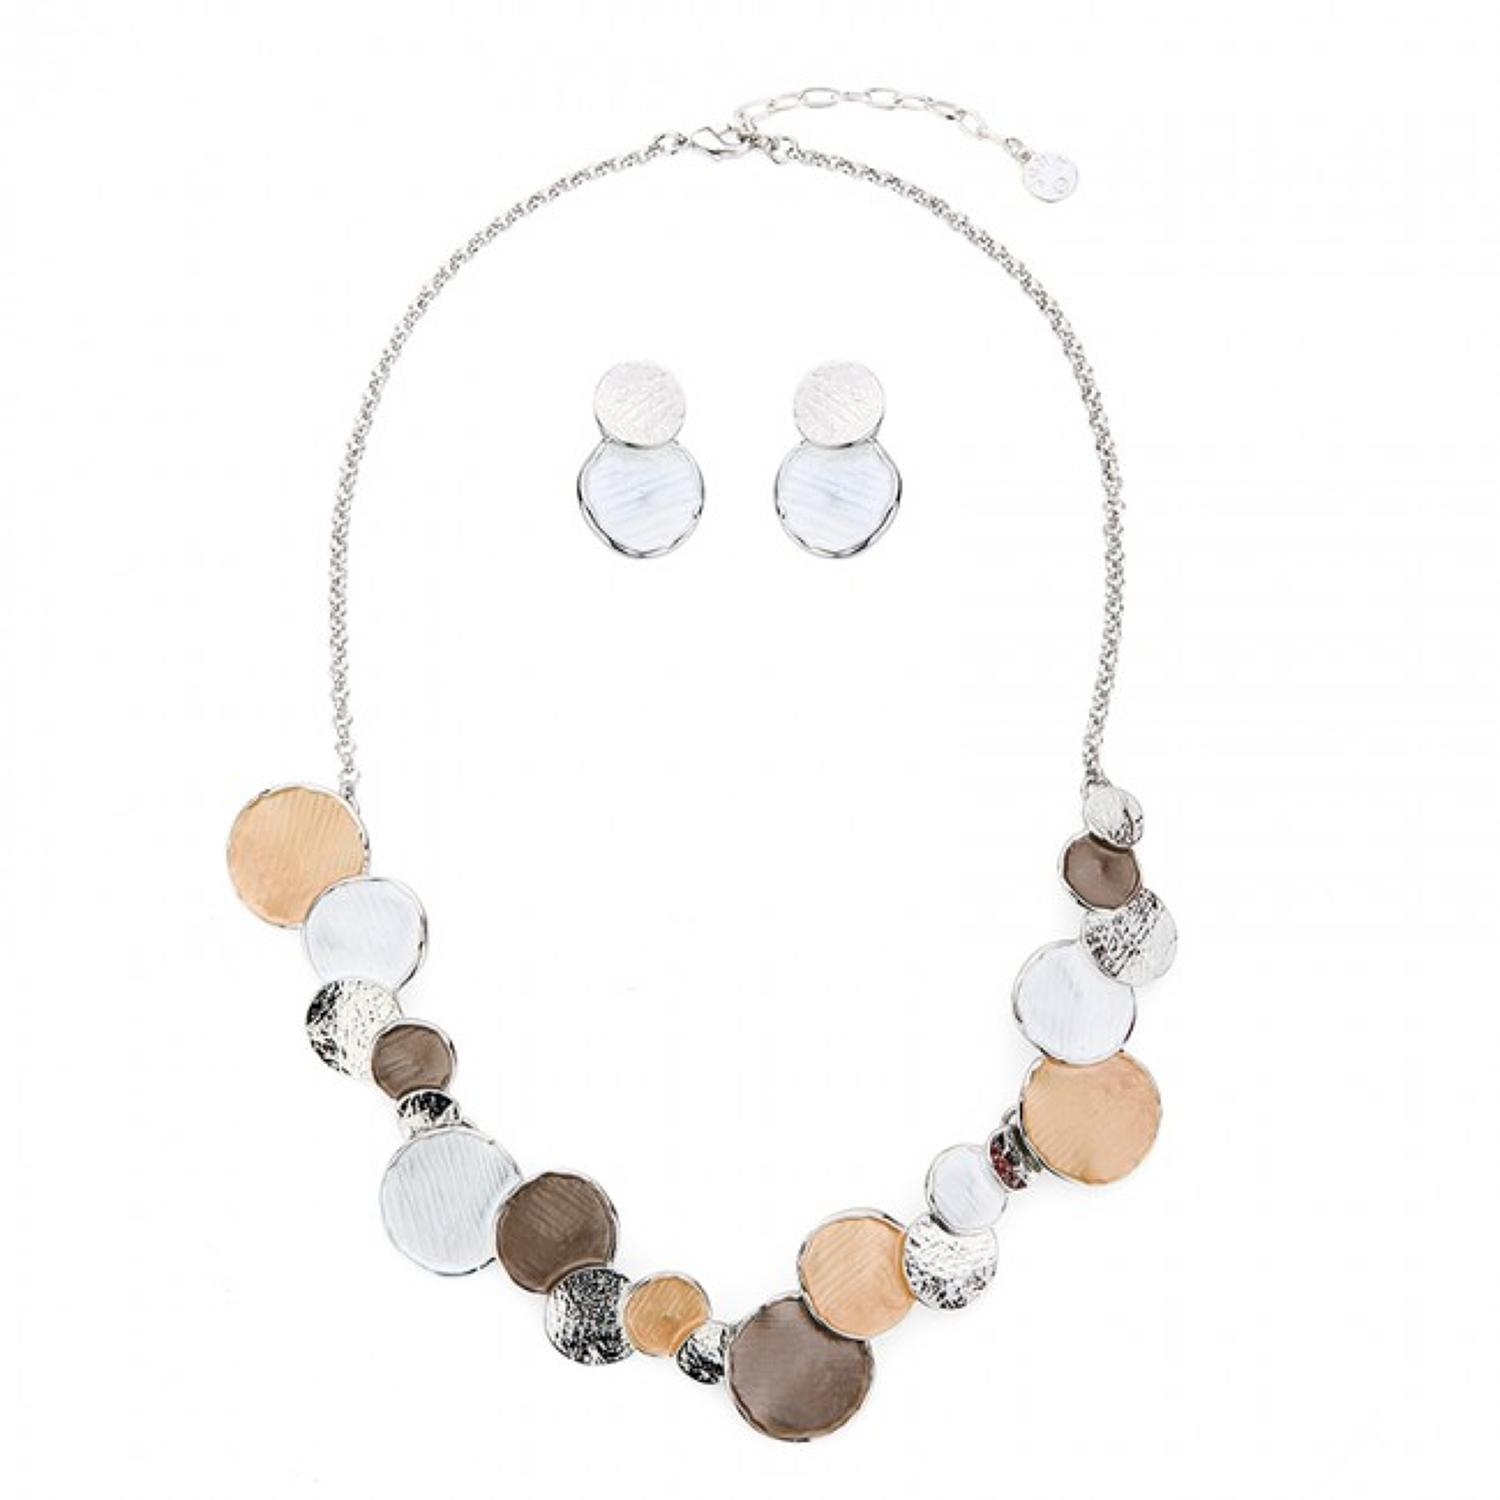 Autumnal Circular Necklace & Earring Set